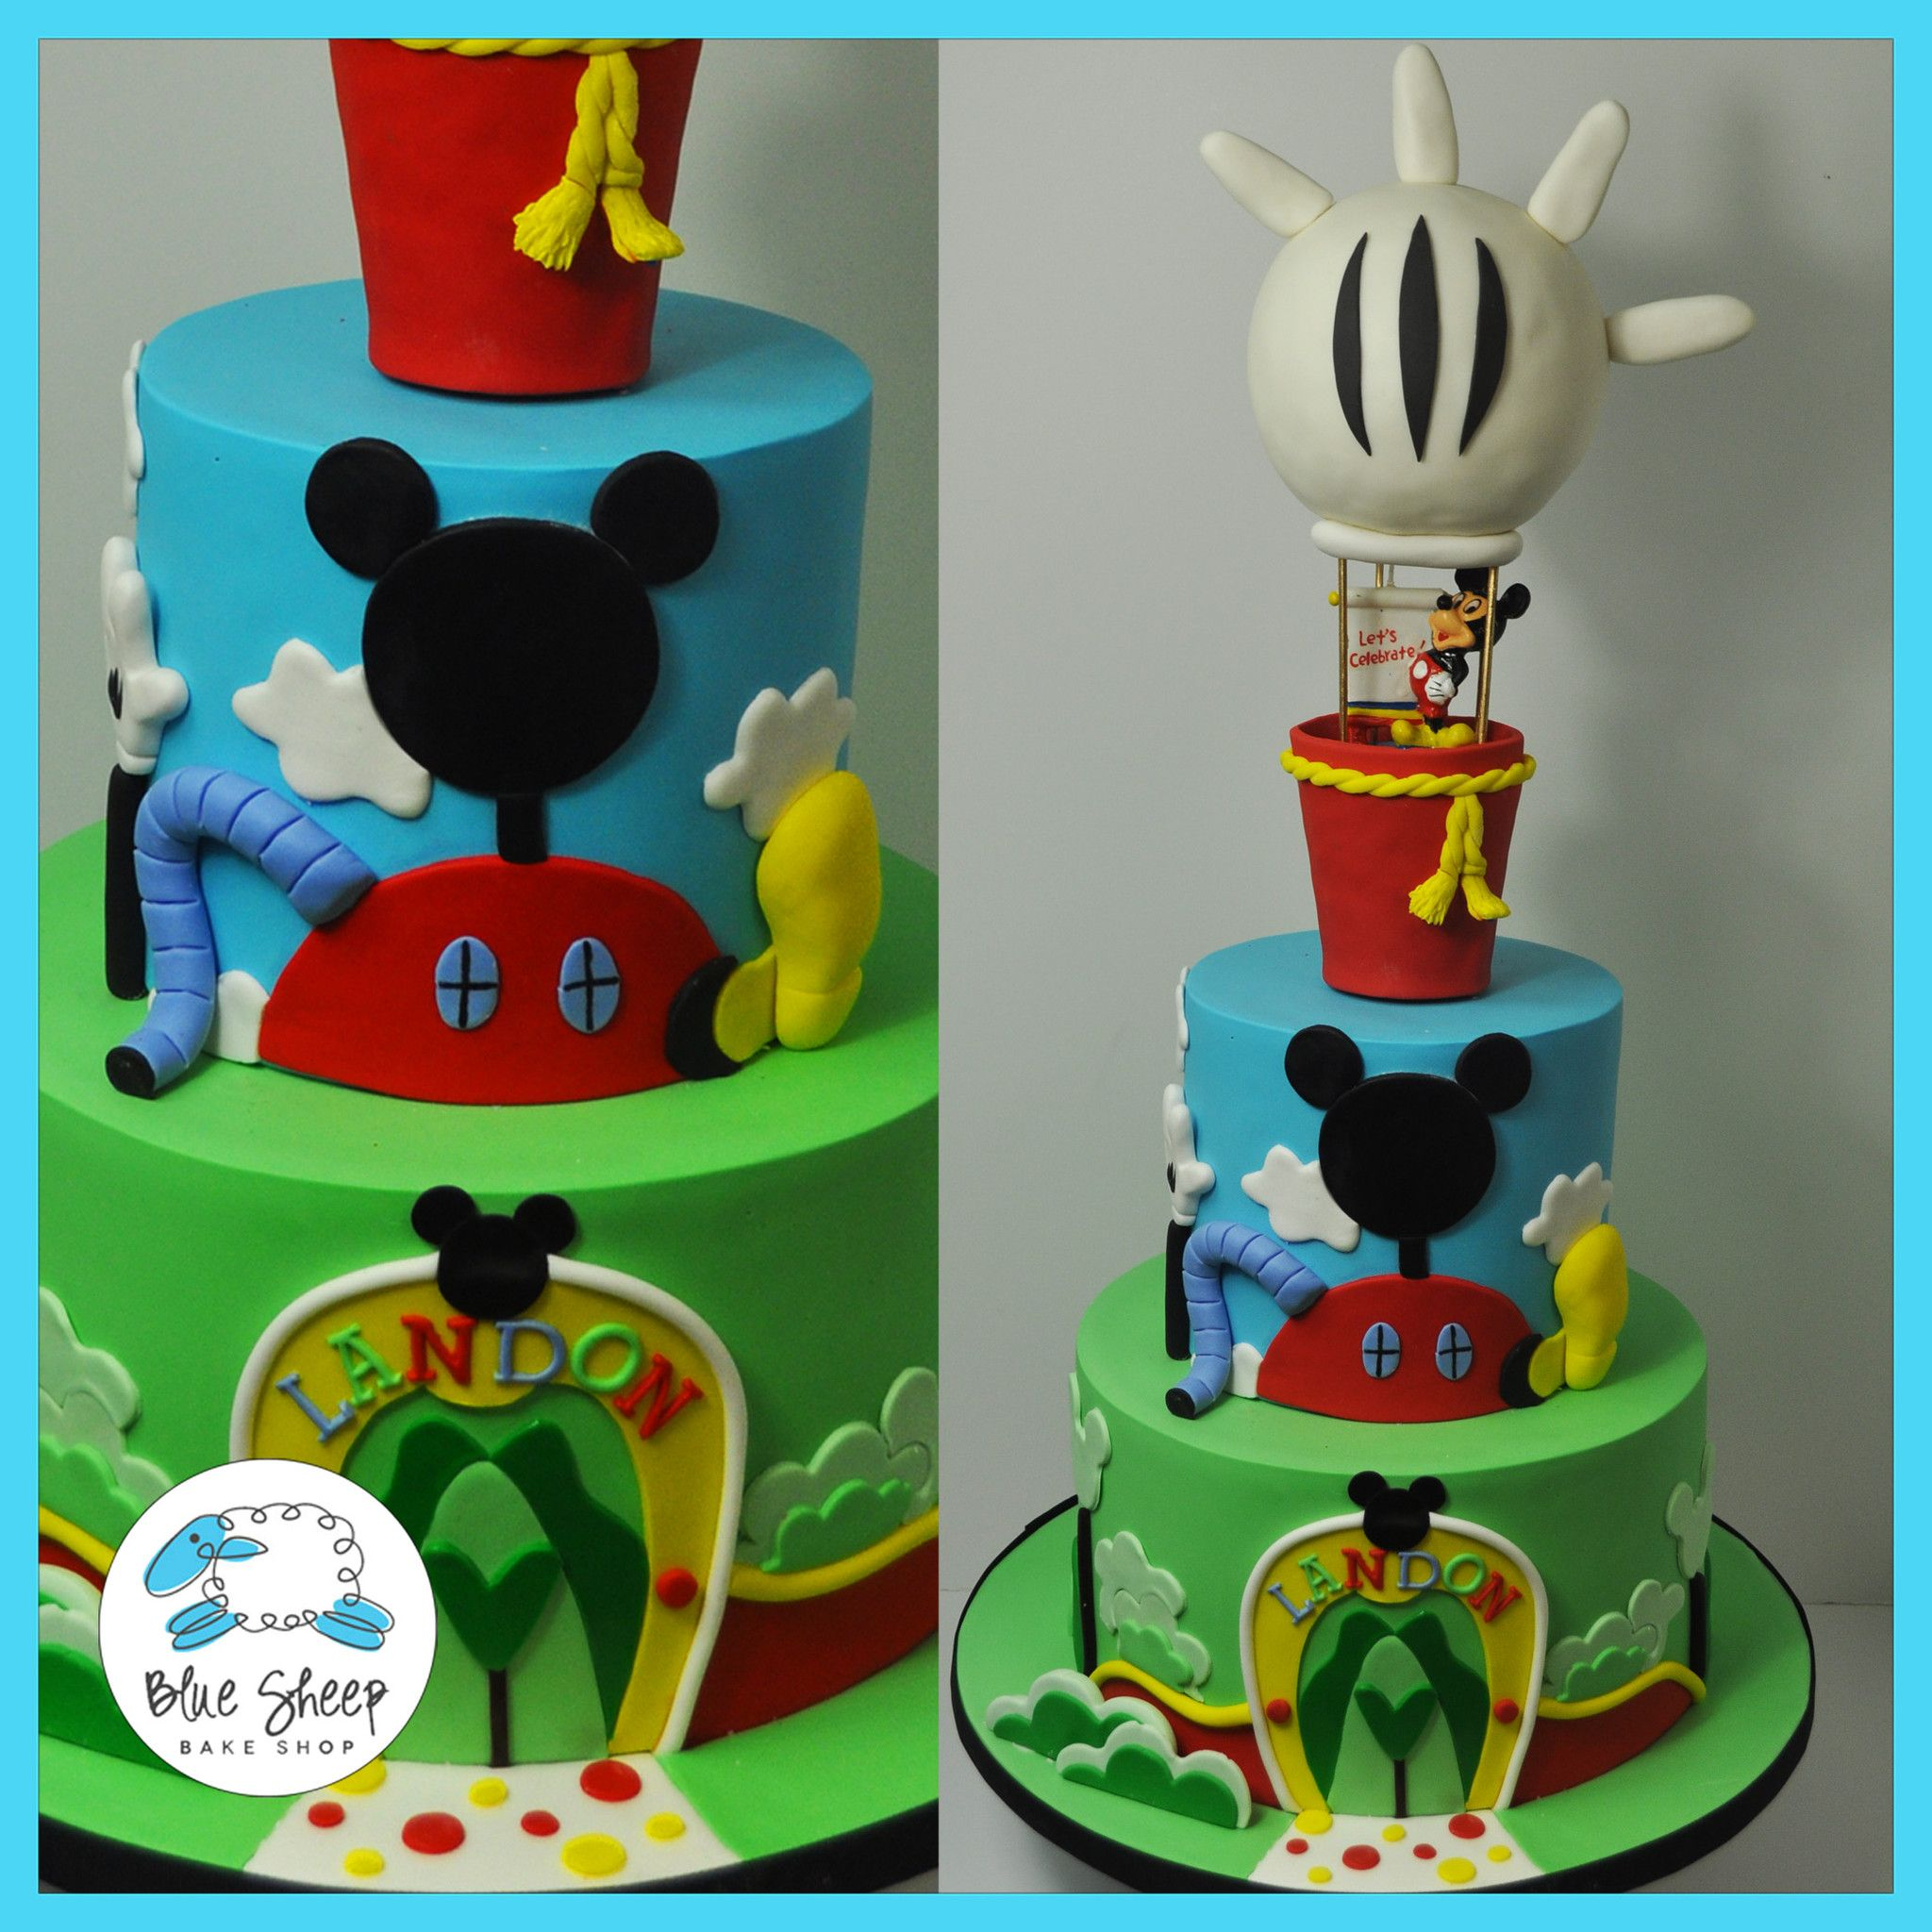 Landon s Mickey Mouse Clubhouse Hot Air Balloon Cake – Blue Sheep